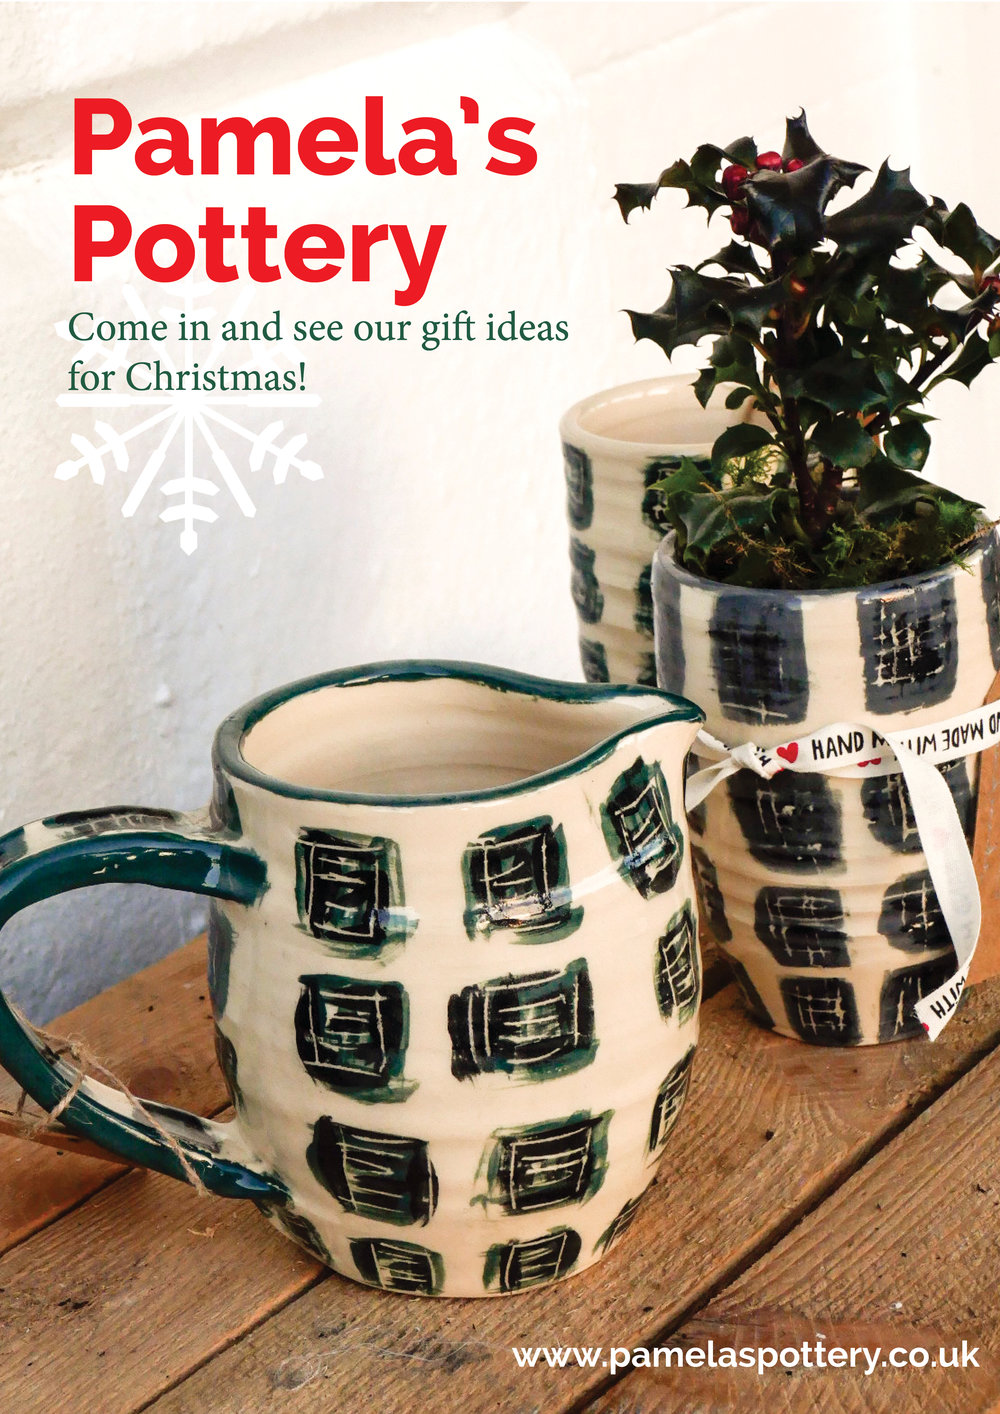 Leaflet for Pamela's pottery in Brighton